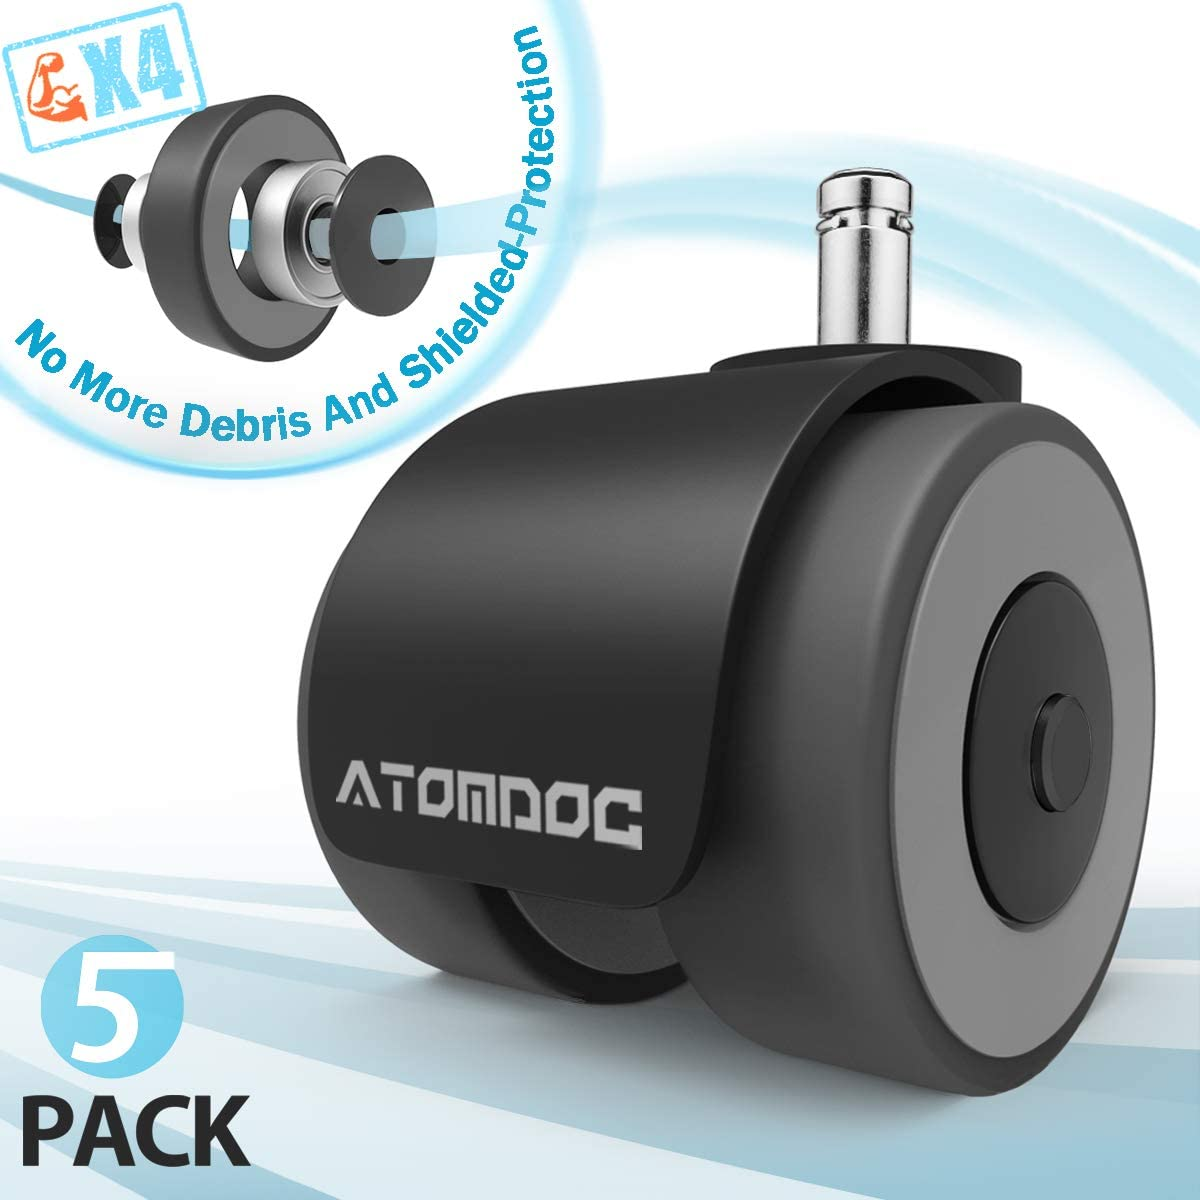 ATOMDOC Office Chair Caster Wheels, Newly Revolutionary Quadruple Ball Bearing Design,Heavy Duty & Safe Protection for All Floors Including Hardwood, Set of 5